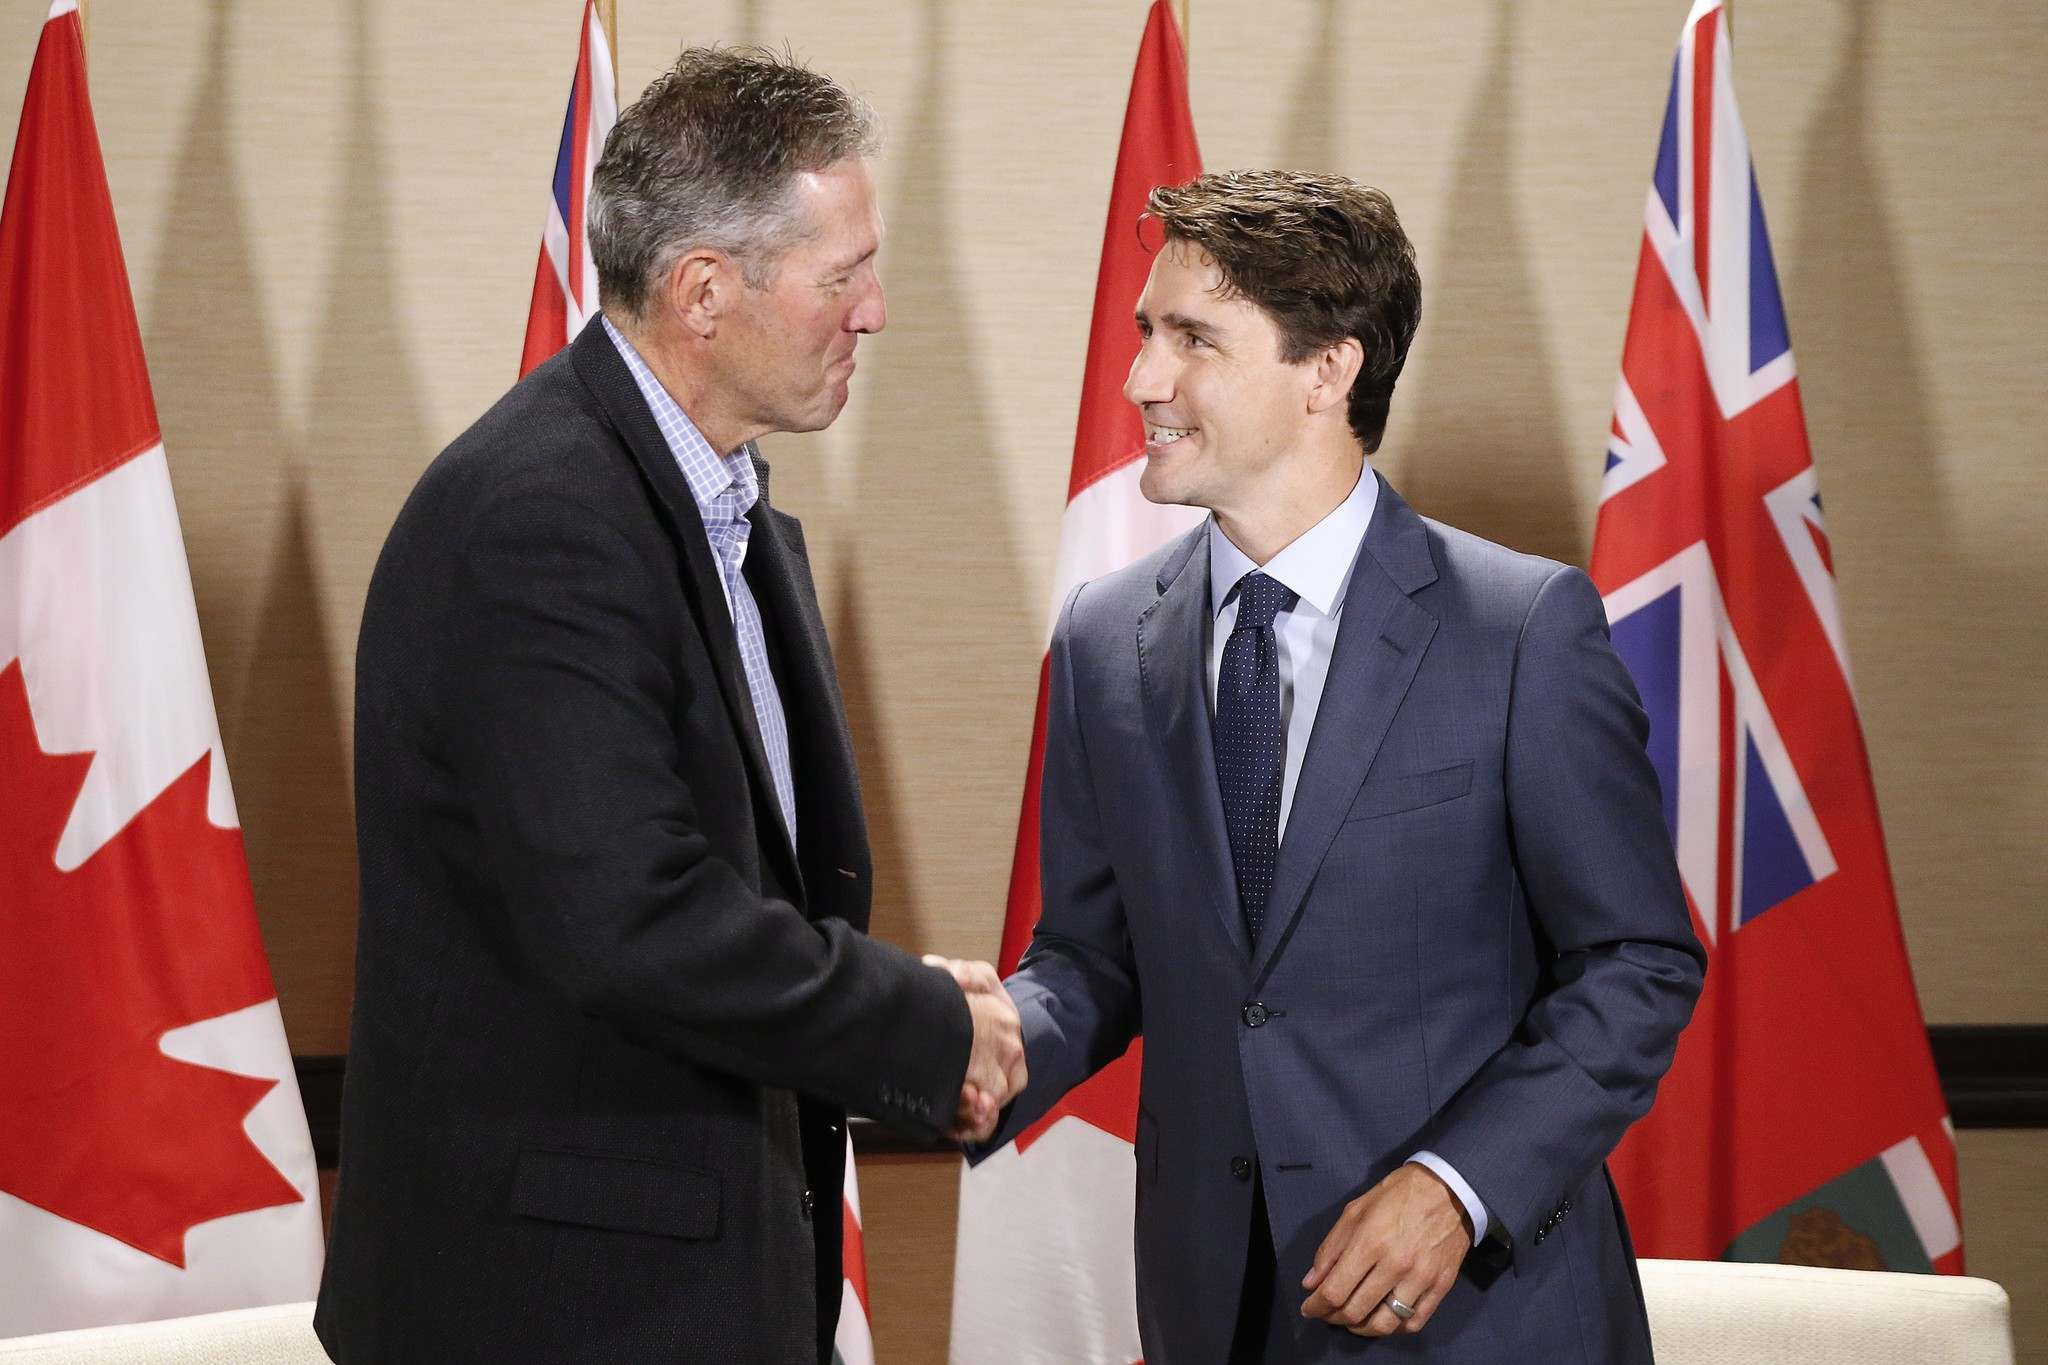 Prime Minister Justin Trudeau meets with Manitoba Premier Brian Pallister in Winnipeg on Saturday, July 29, 2017. THE CANADIAN PRESS/John Woods</p>